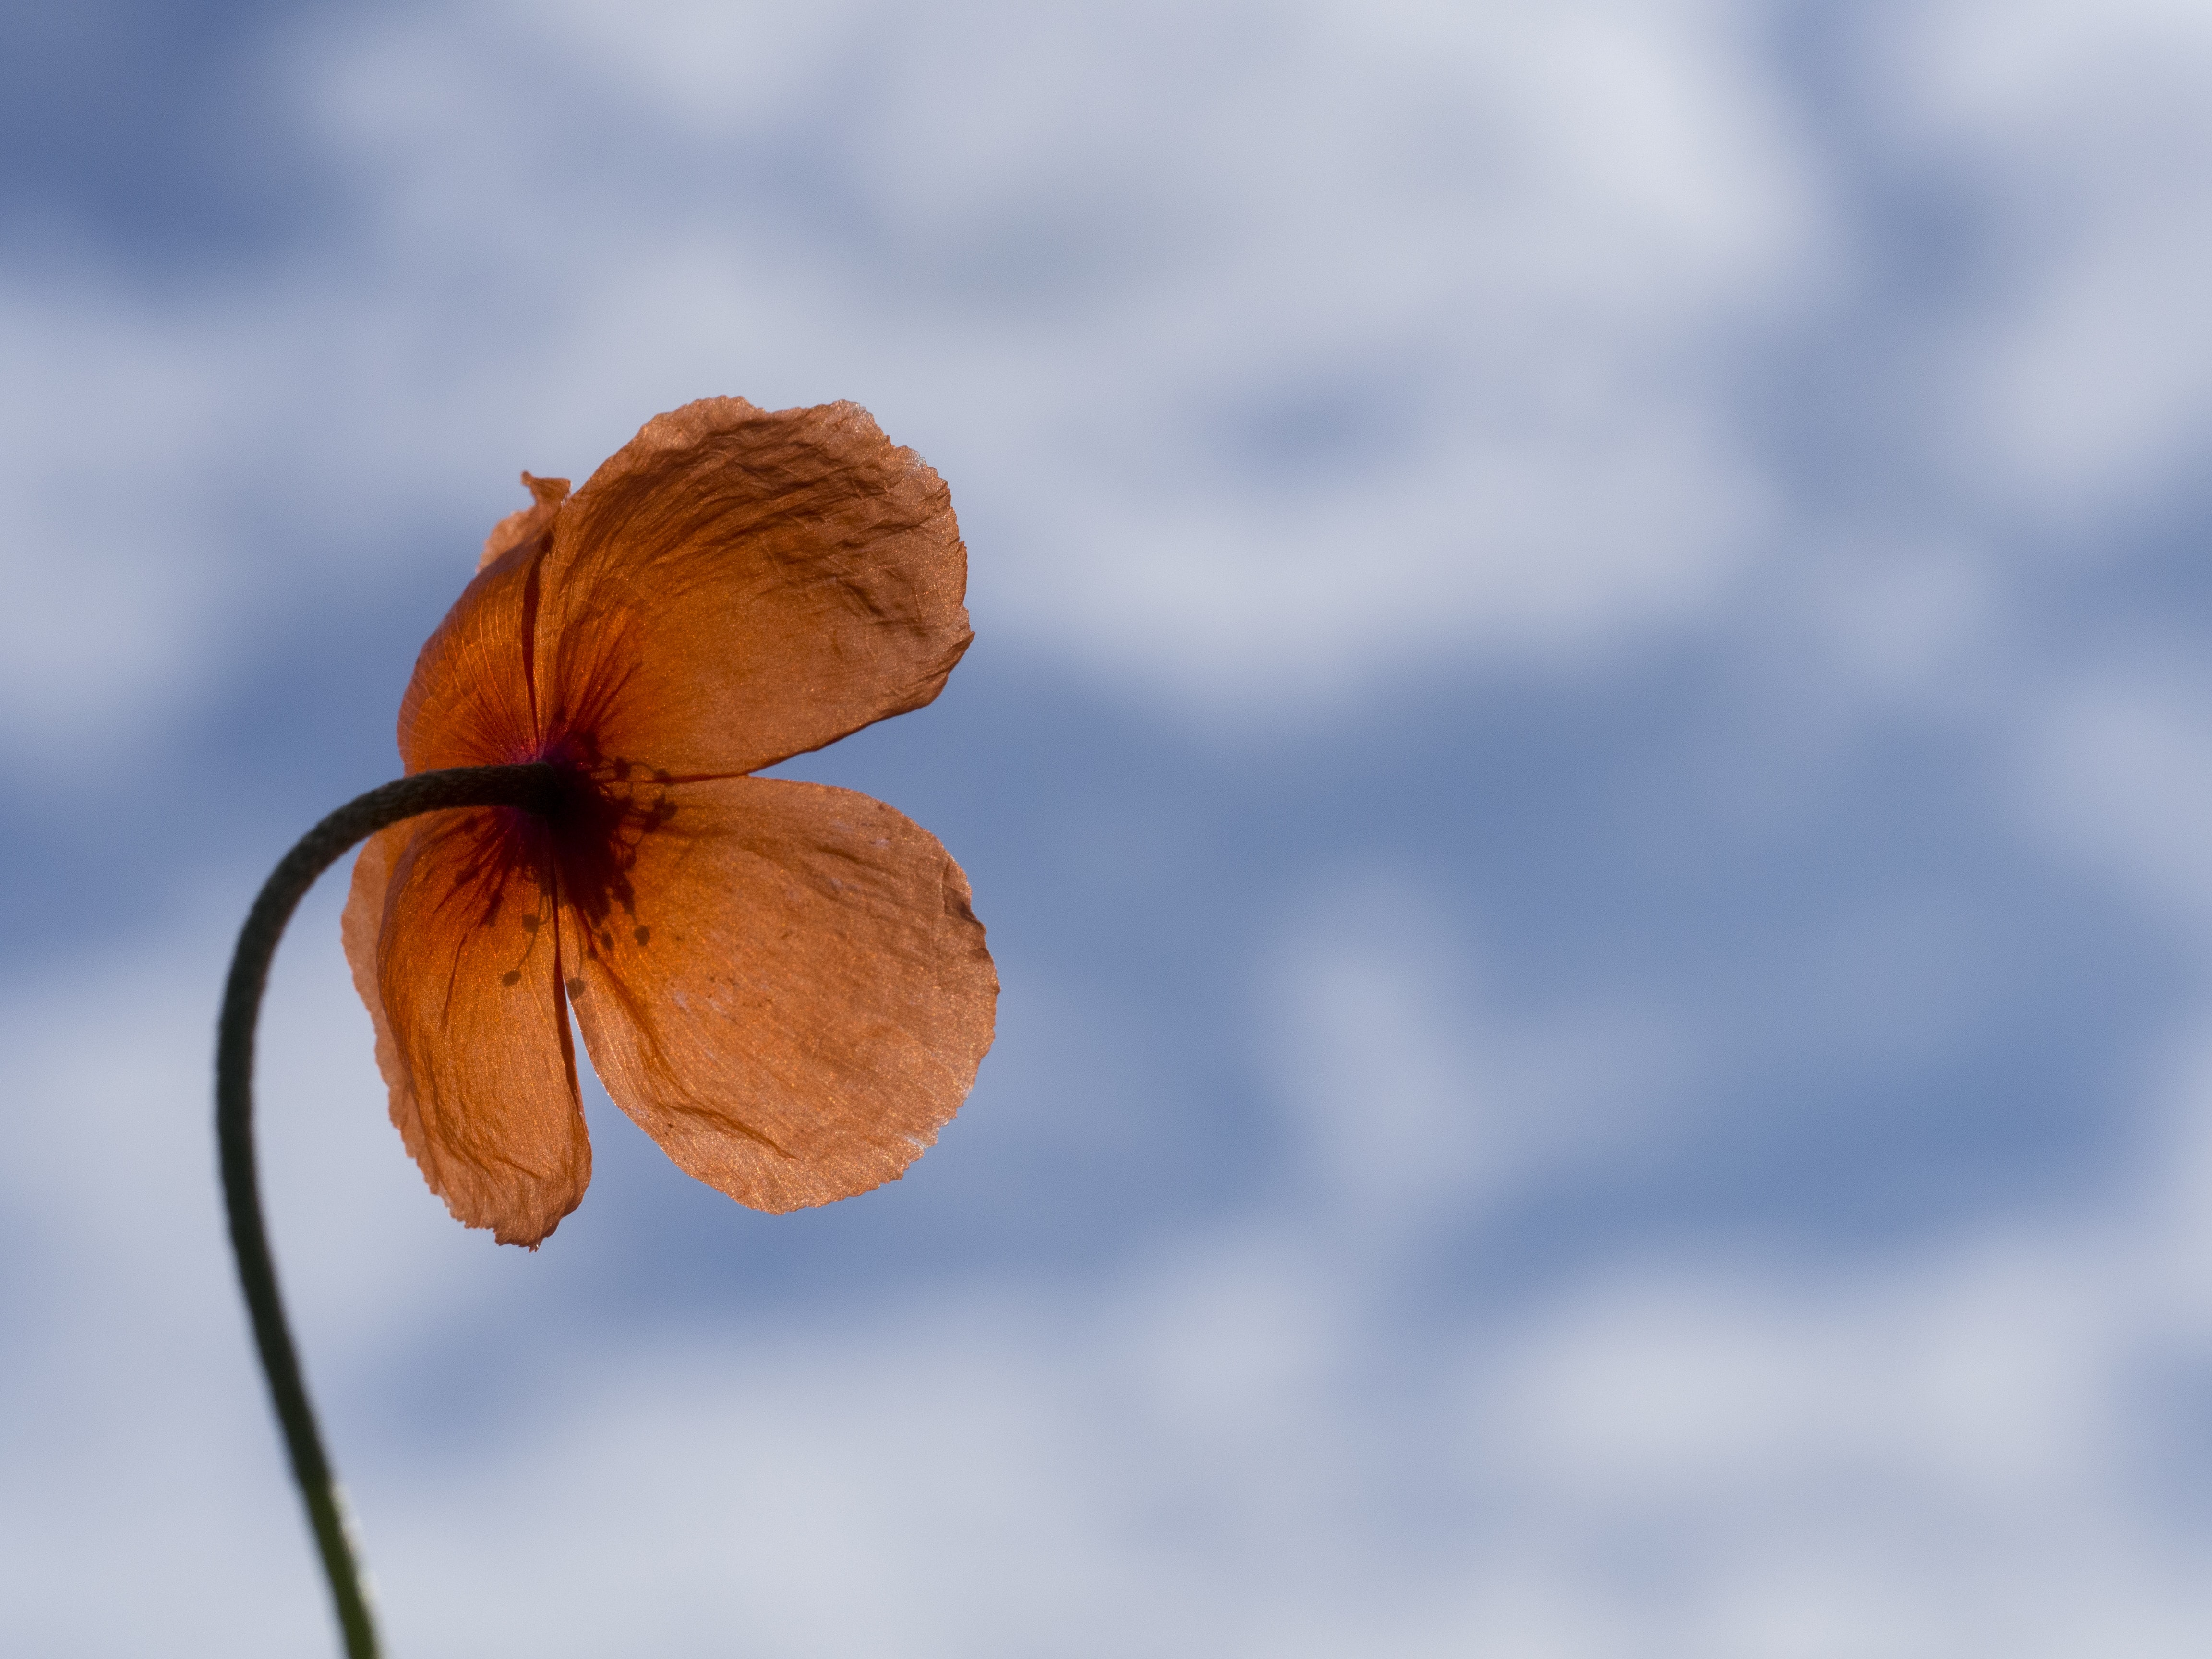 A Poppy flower against a blue sky